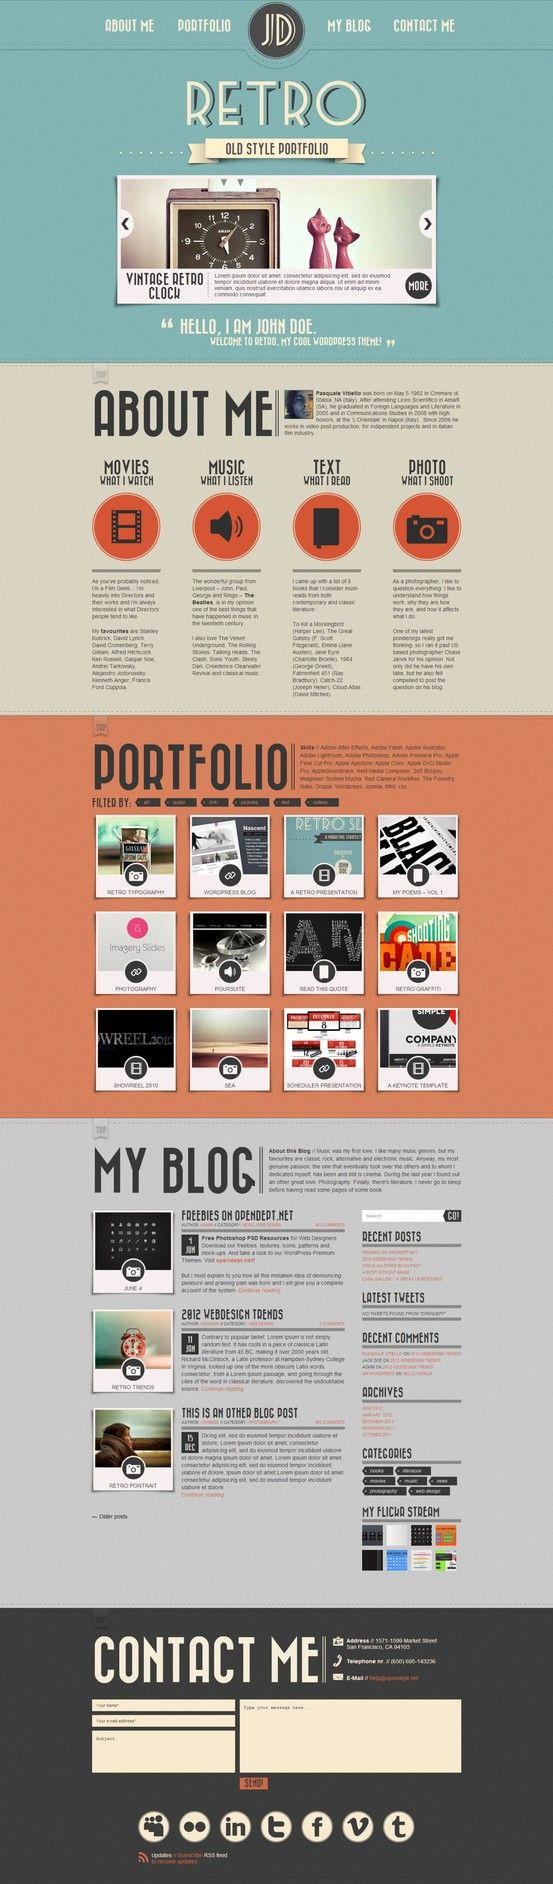 Retro Portfolio - One Page Vintage #Wordpress Theme